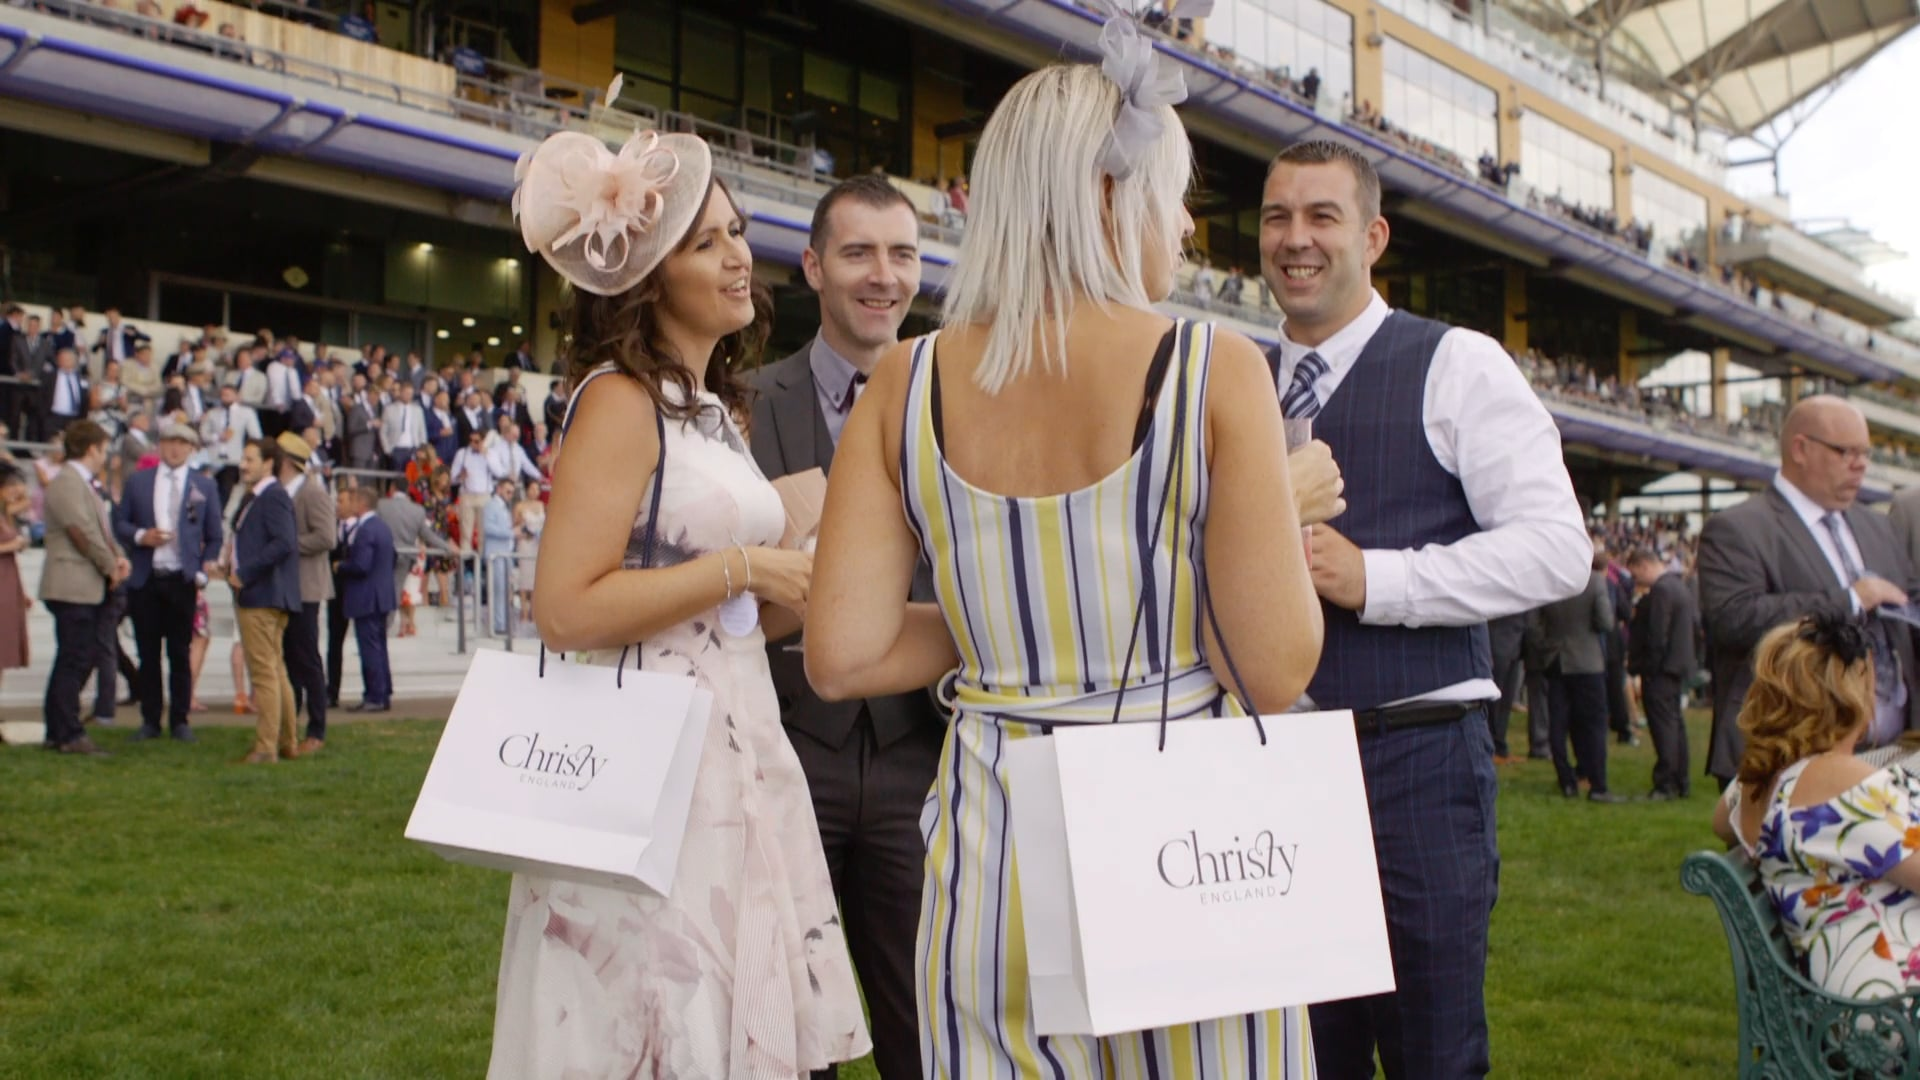 Christy at ASCOT